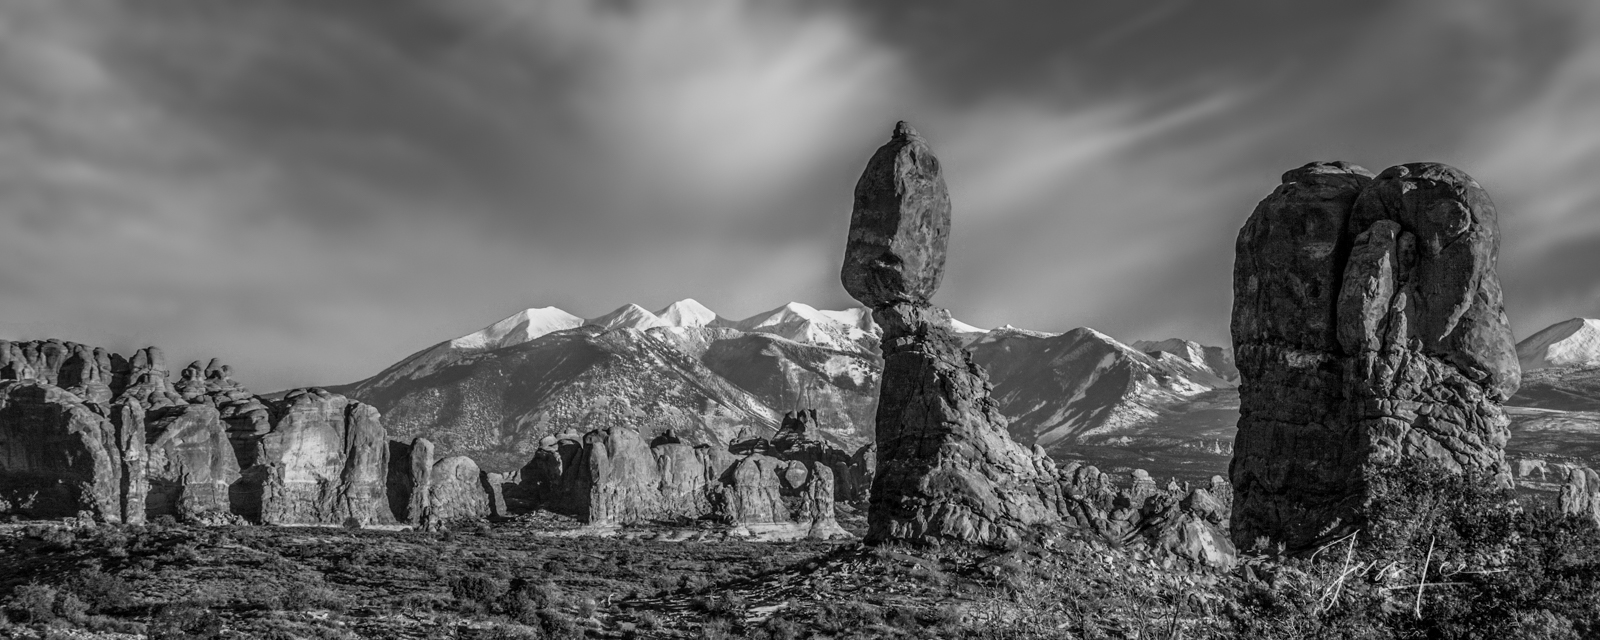 FINE ART LIMITED EDITION BLACK AND WHITE PHOTOGRAPHIC PRINT OF BALANCED ROCK IN ARCHES NATIONAL PARK Arches Landscape photo print...